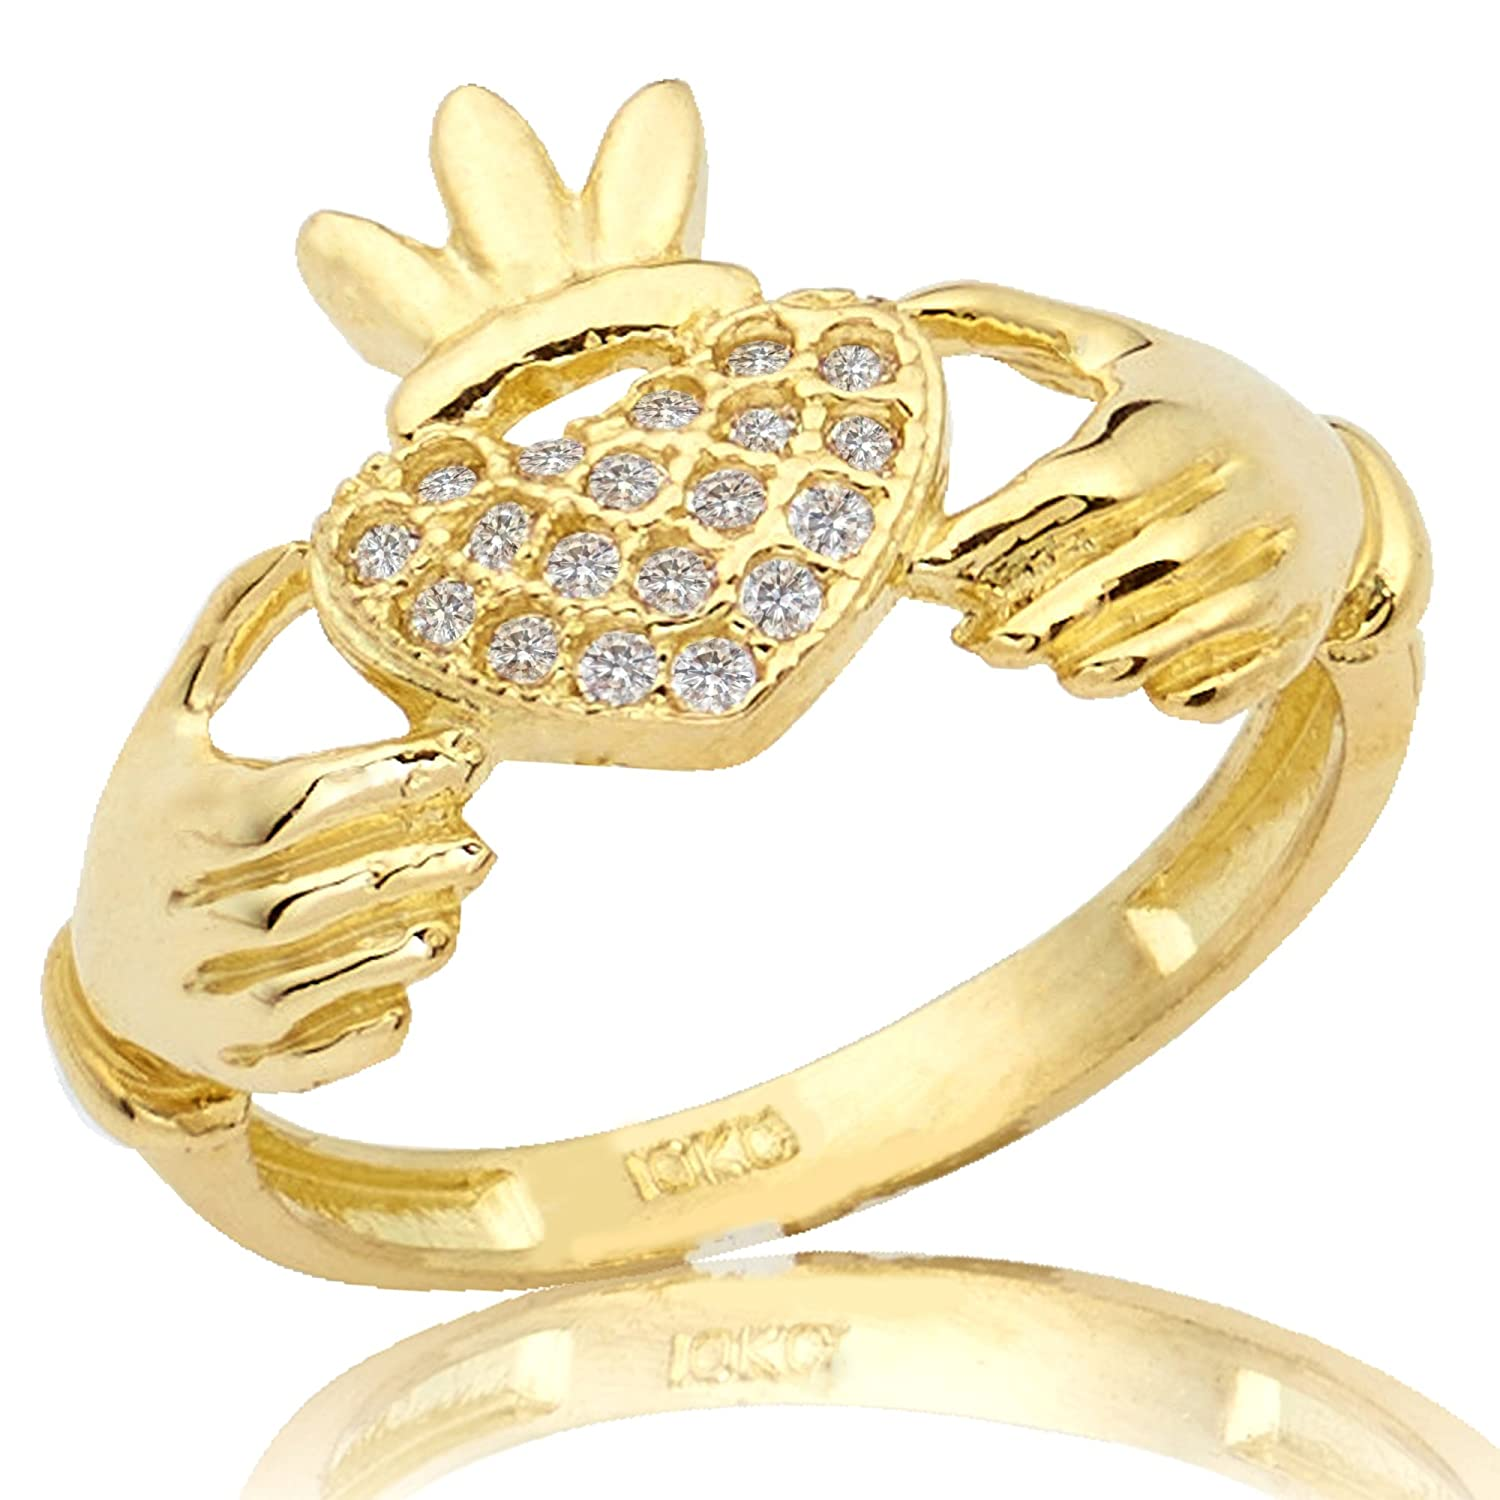 LoveBling 10K Yellow Gold Claddagh Heart Ring with 19 Cubic Zirconia (Sizes 5 - 9)